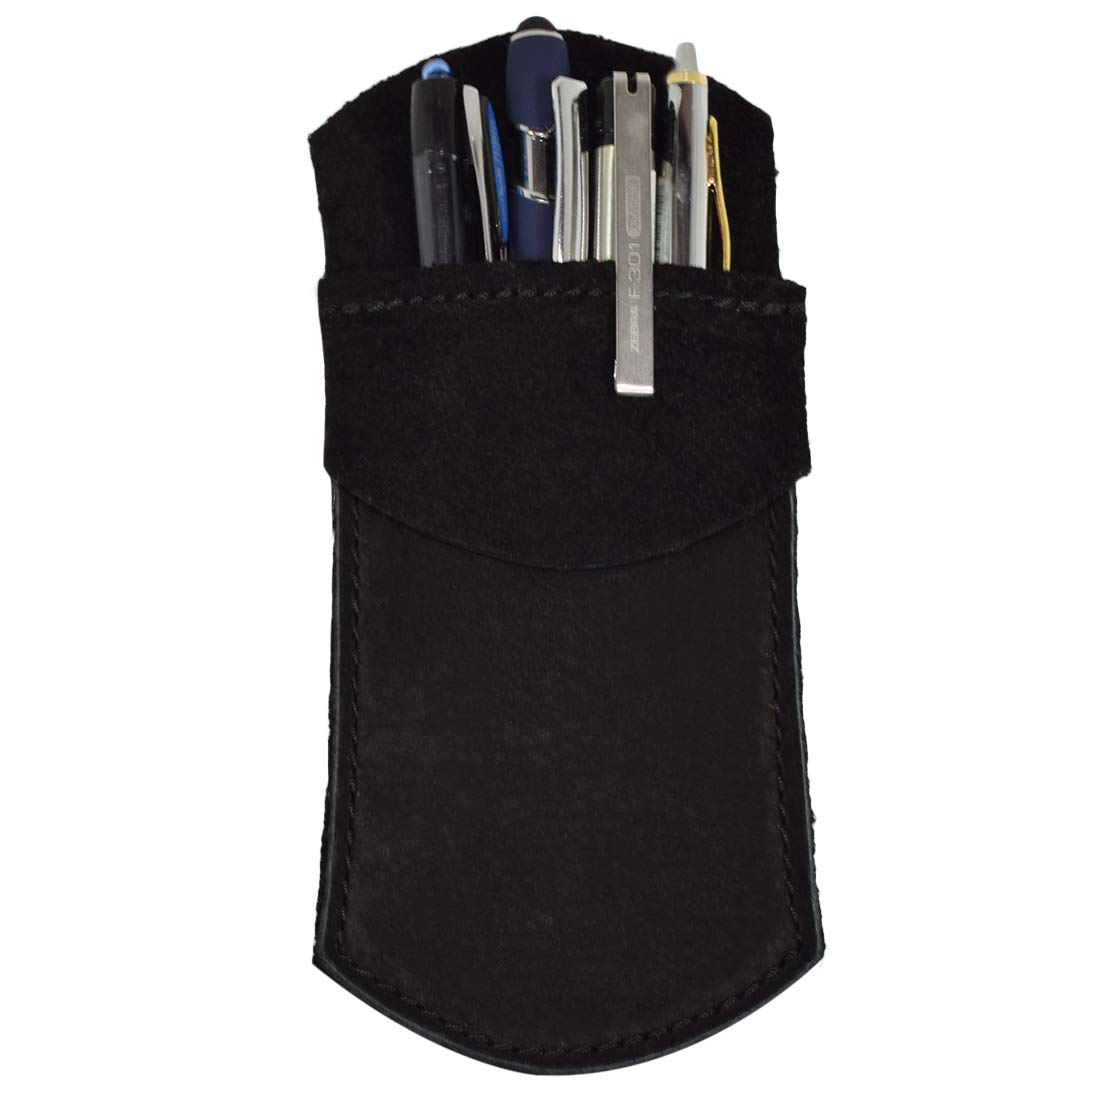 Durable Leather Pocket Protector/Pencil Pouch/Office & Work Essentials Pen Holder :: Charcoal Suede